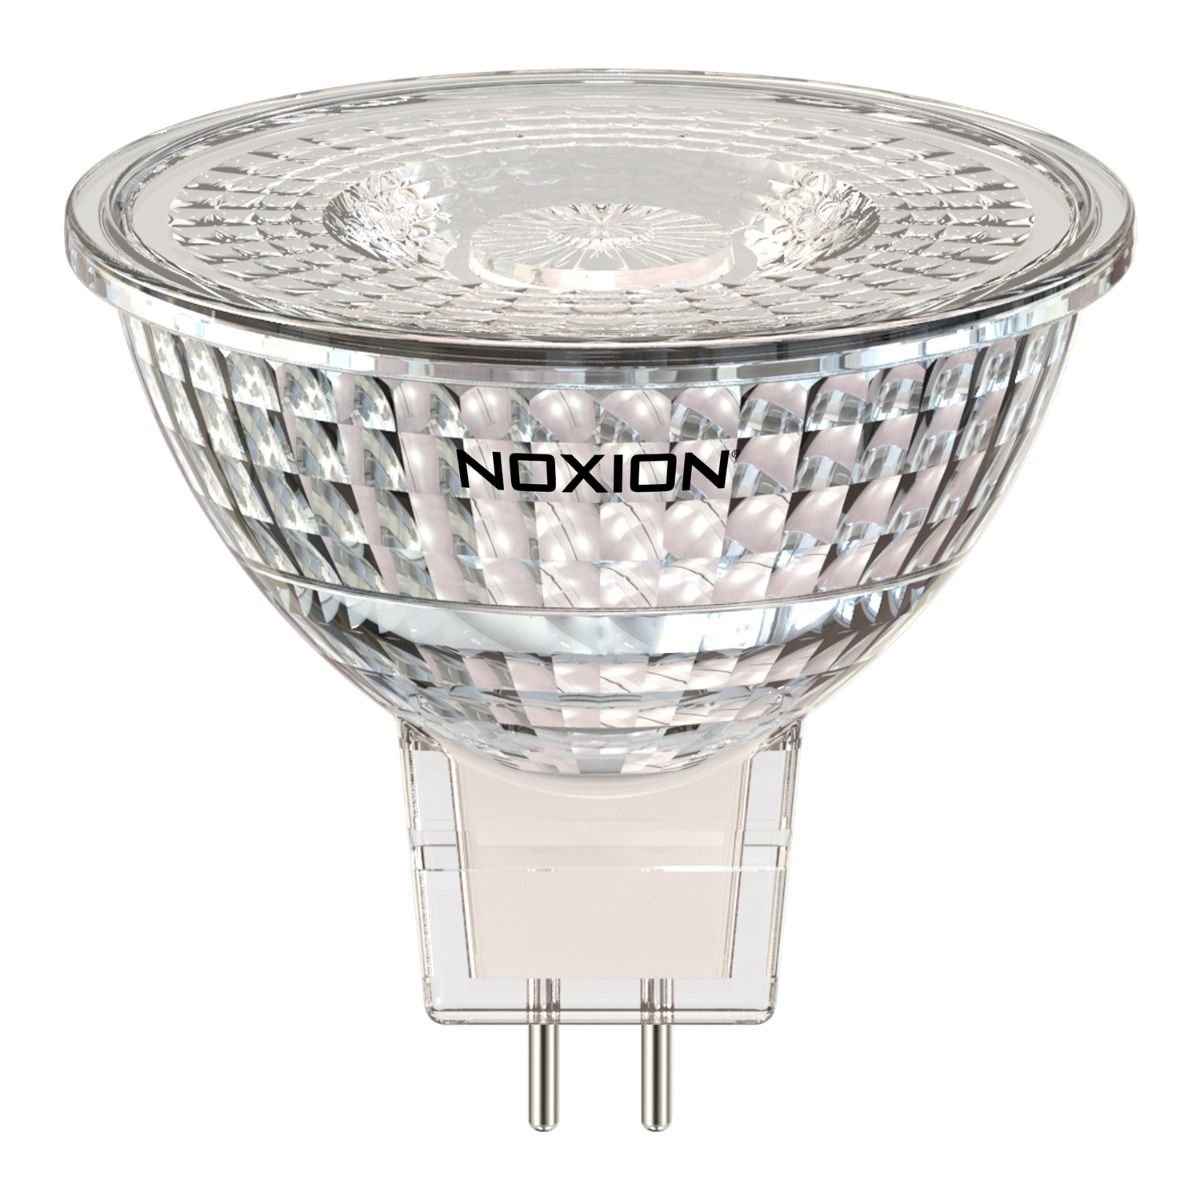 Noxion Spot LED GU5.3 5W 830 36D 470lm | Dimmable - Blanc Chaud - Substitut 35W